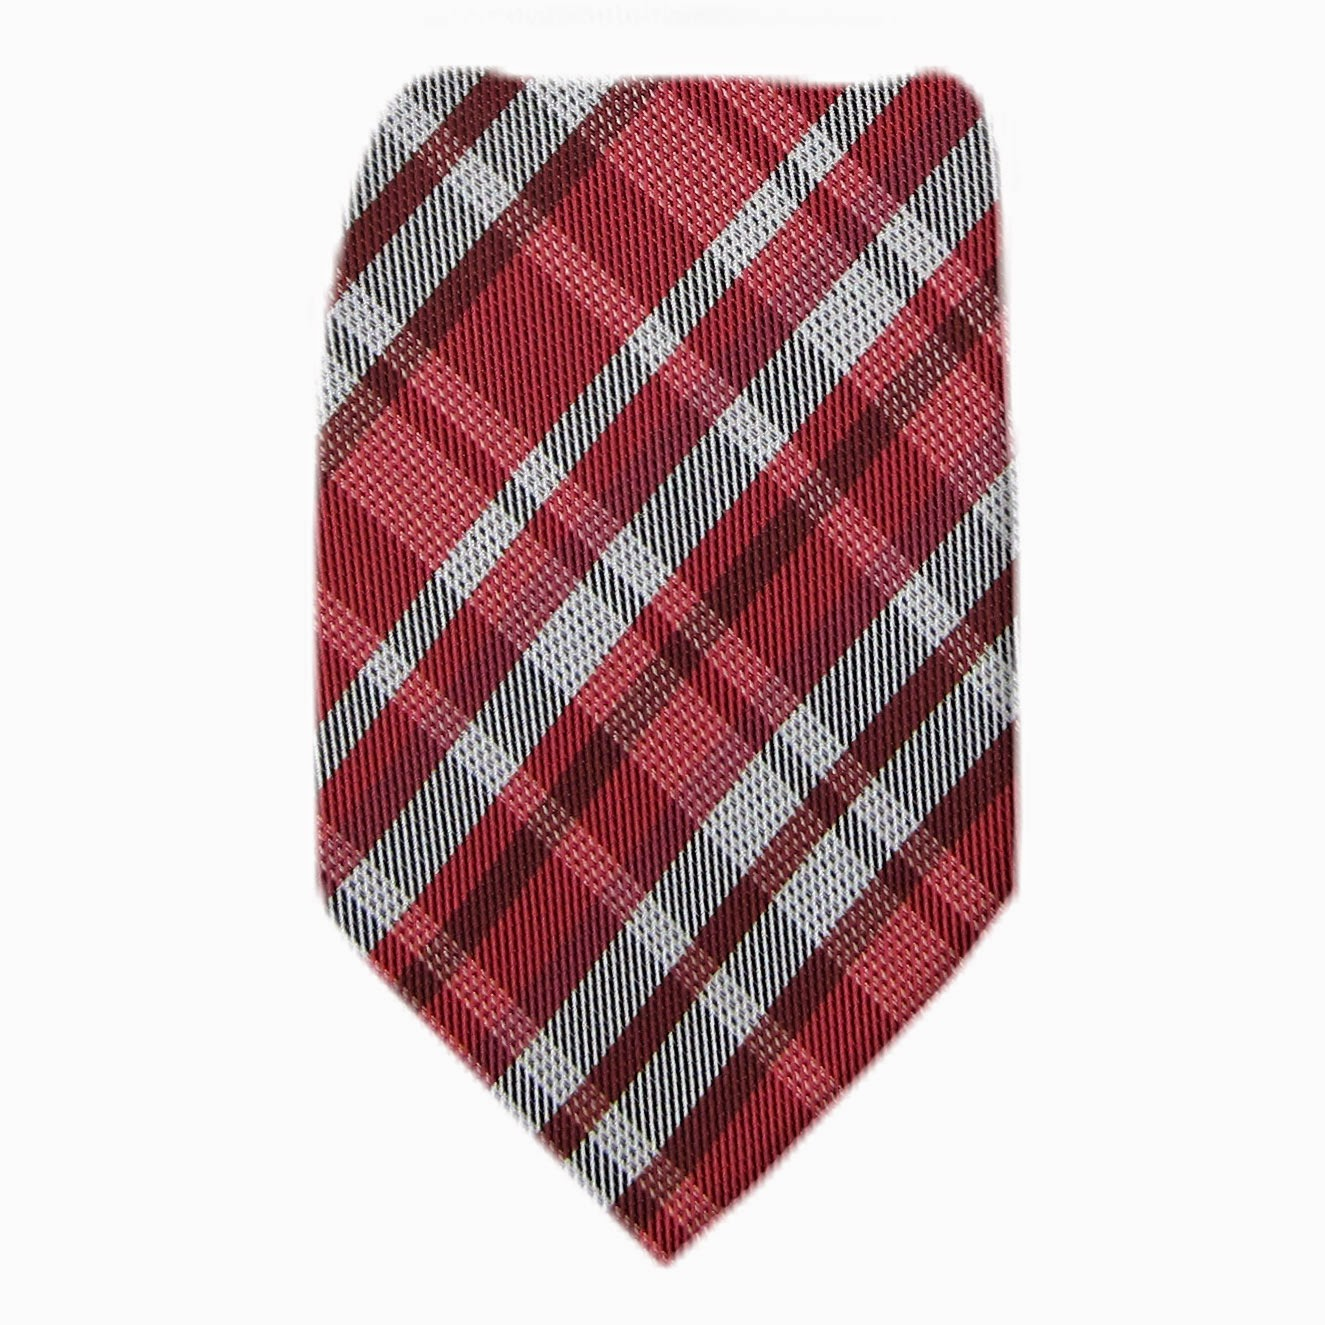 http://www.buyyourties.com/fashion-skinny-ties-c-1849_1850.html